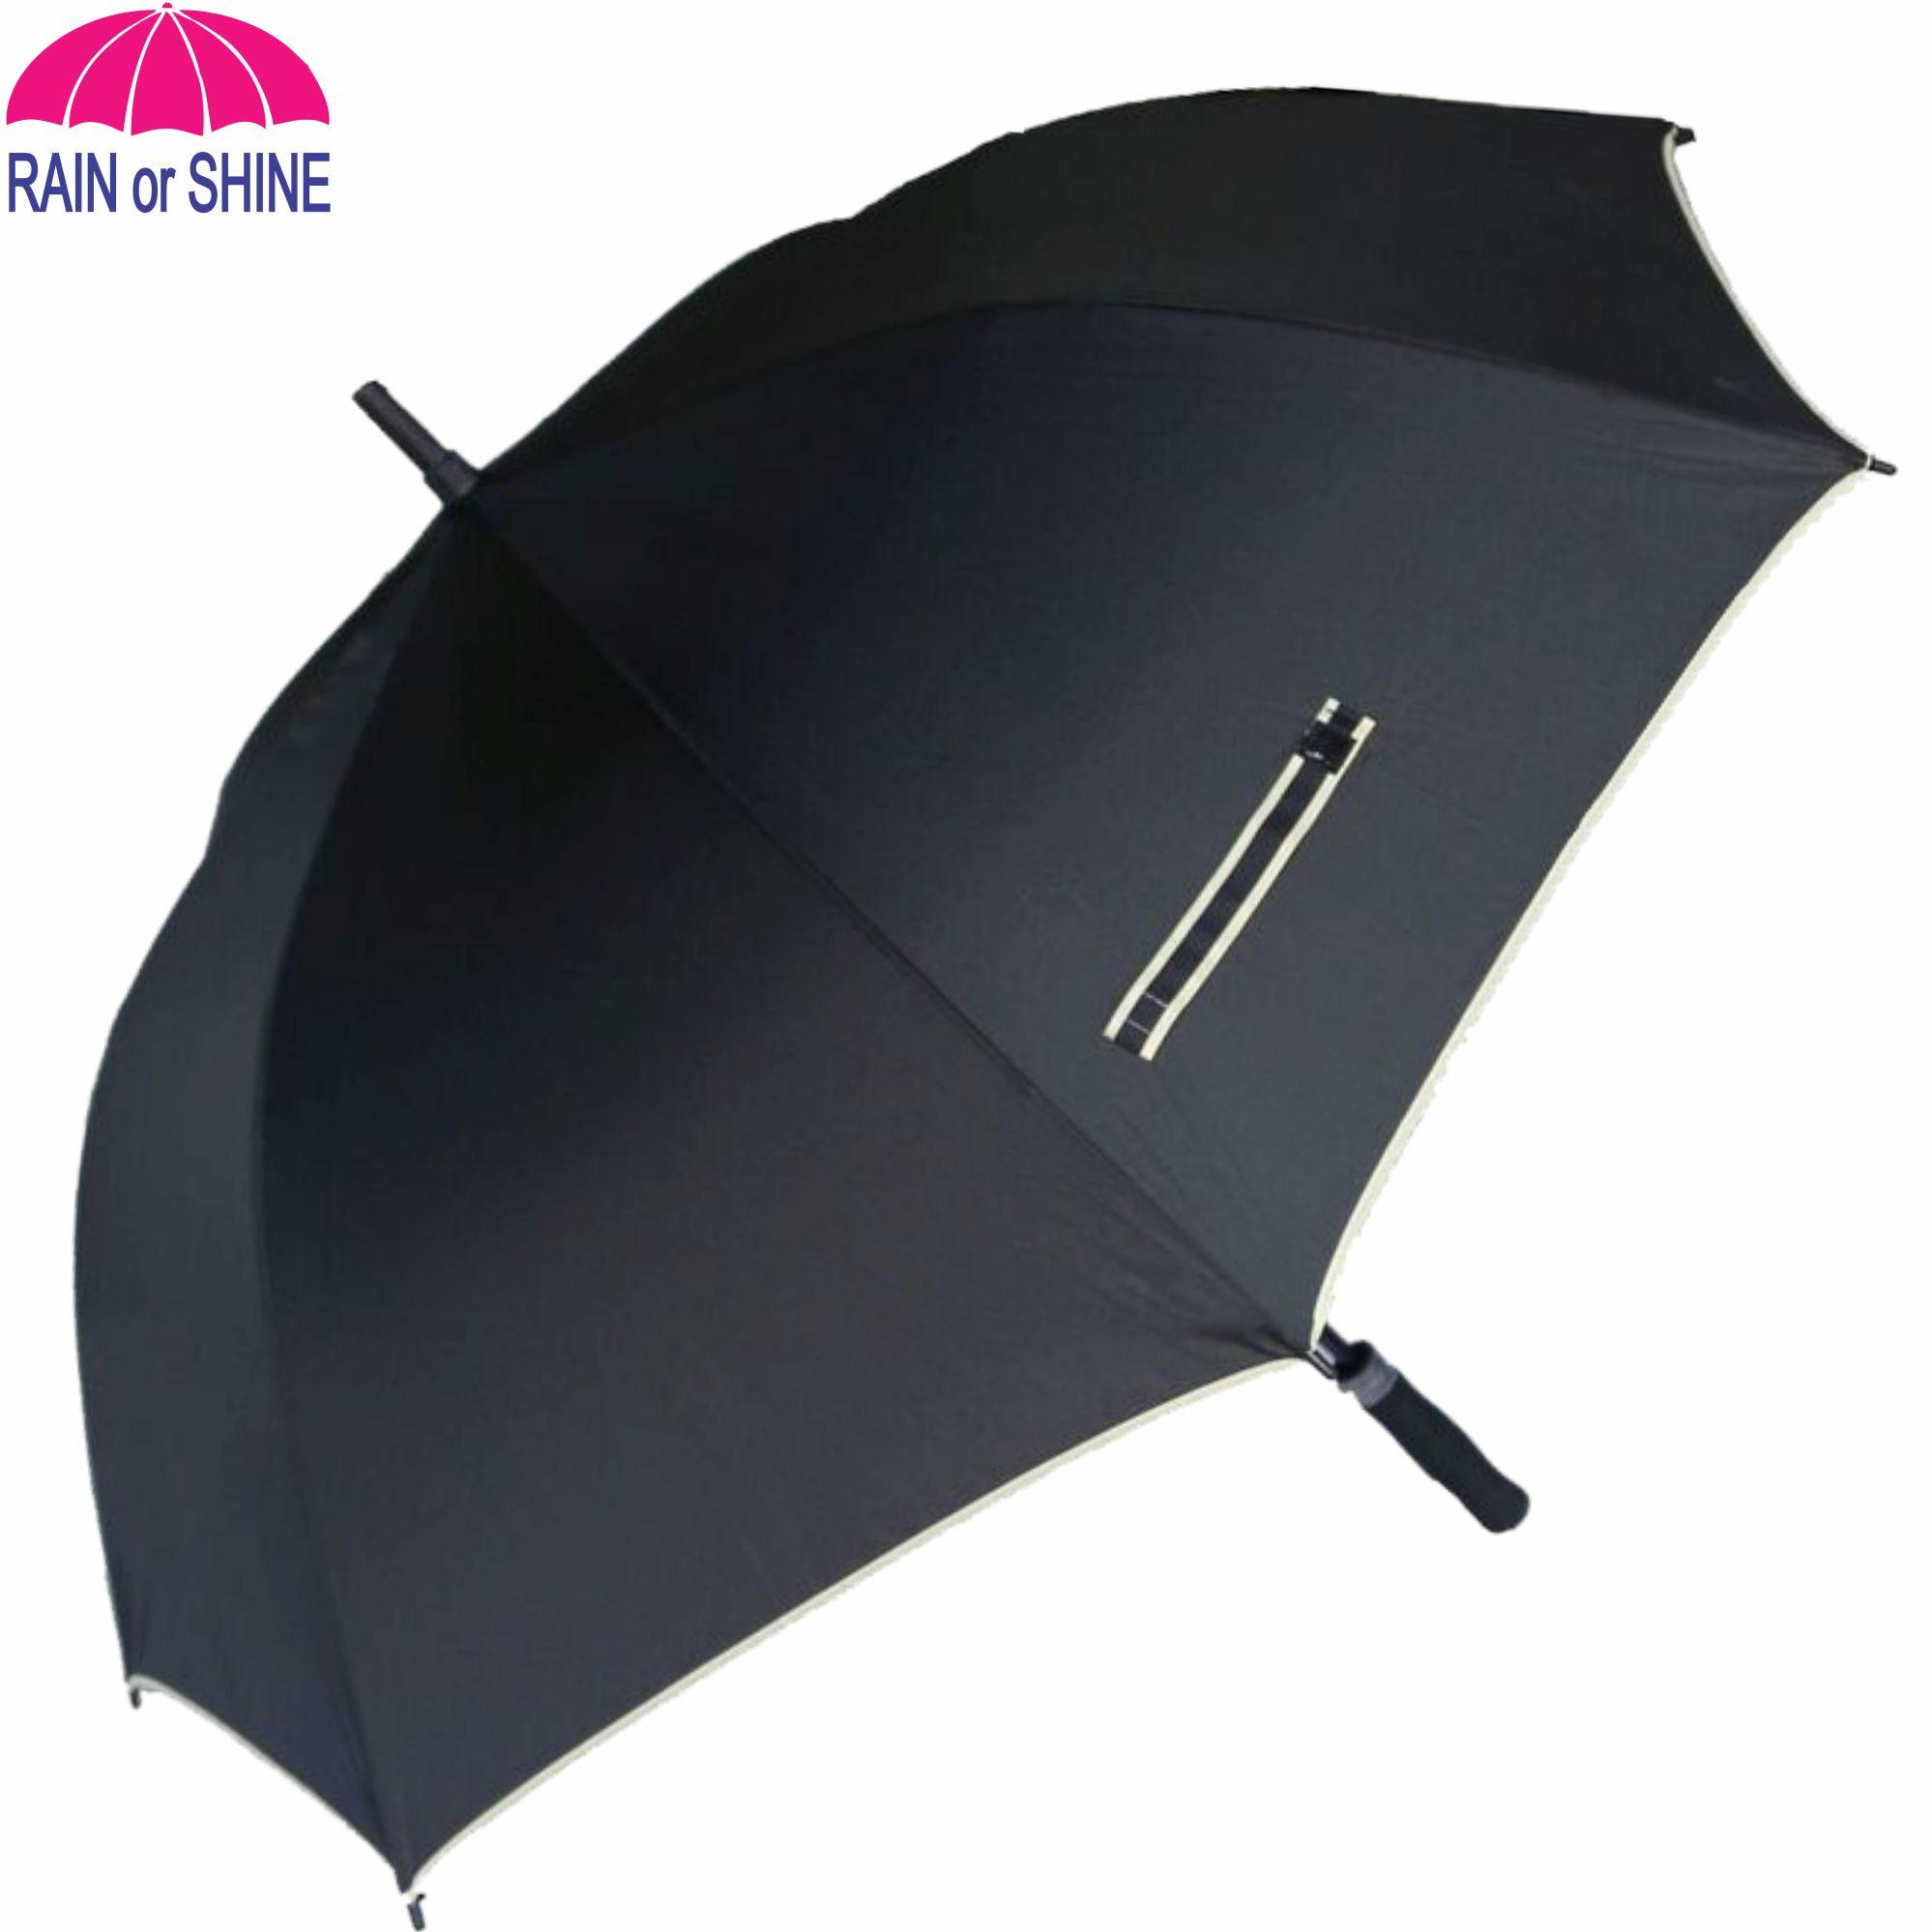 Rain Or Shine 184blk High Quality Golf Umbrella, Fiberglass Ribs And Shaft 64-In Diameter Straight-Type (black) By Umbrella Rain Or Shine.